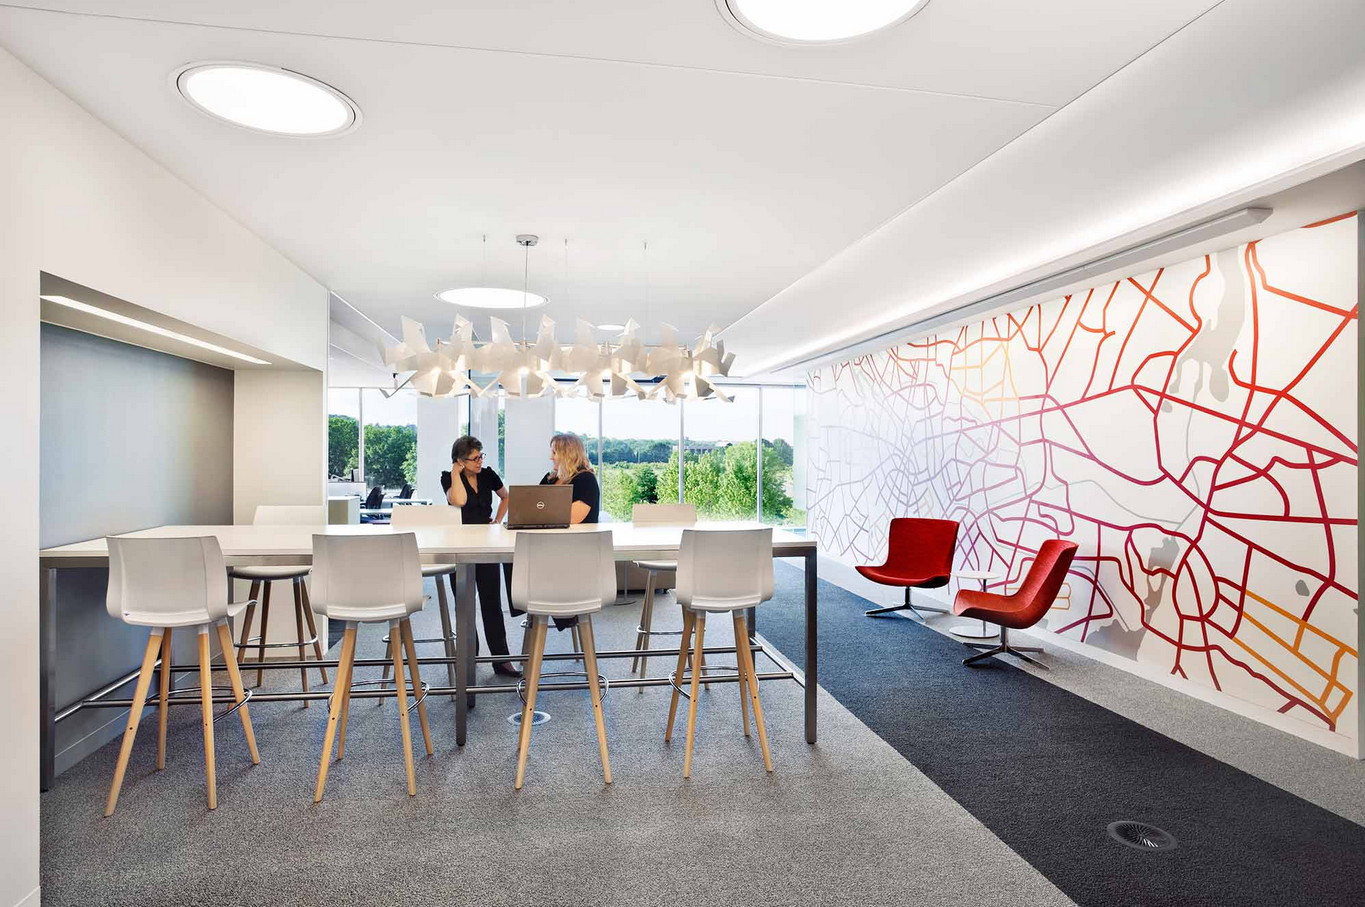 Modern Office Relax Discuss Zone With Creative Abstract Wall